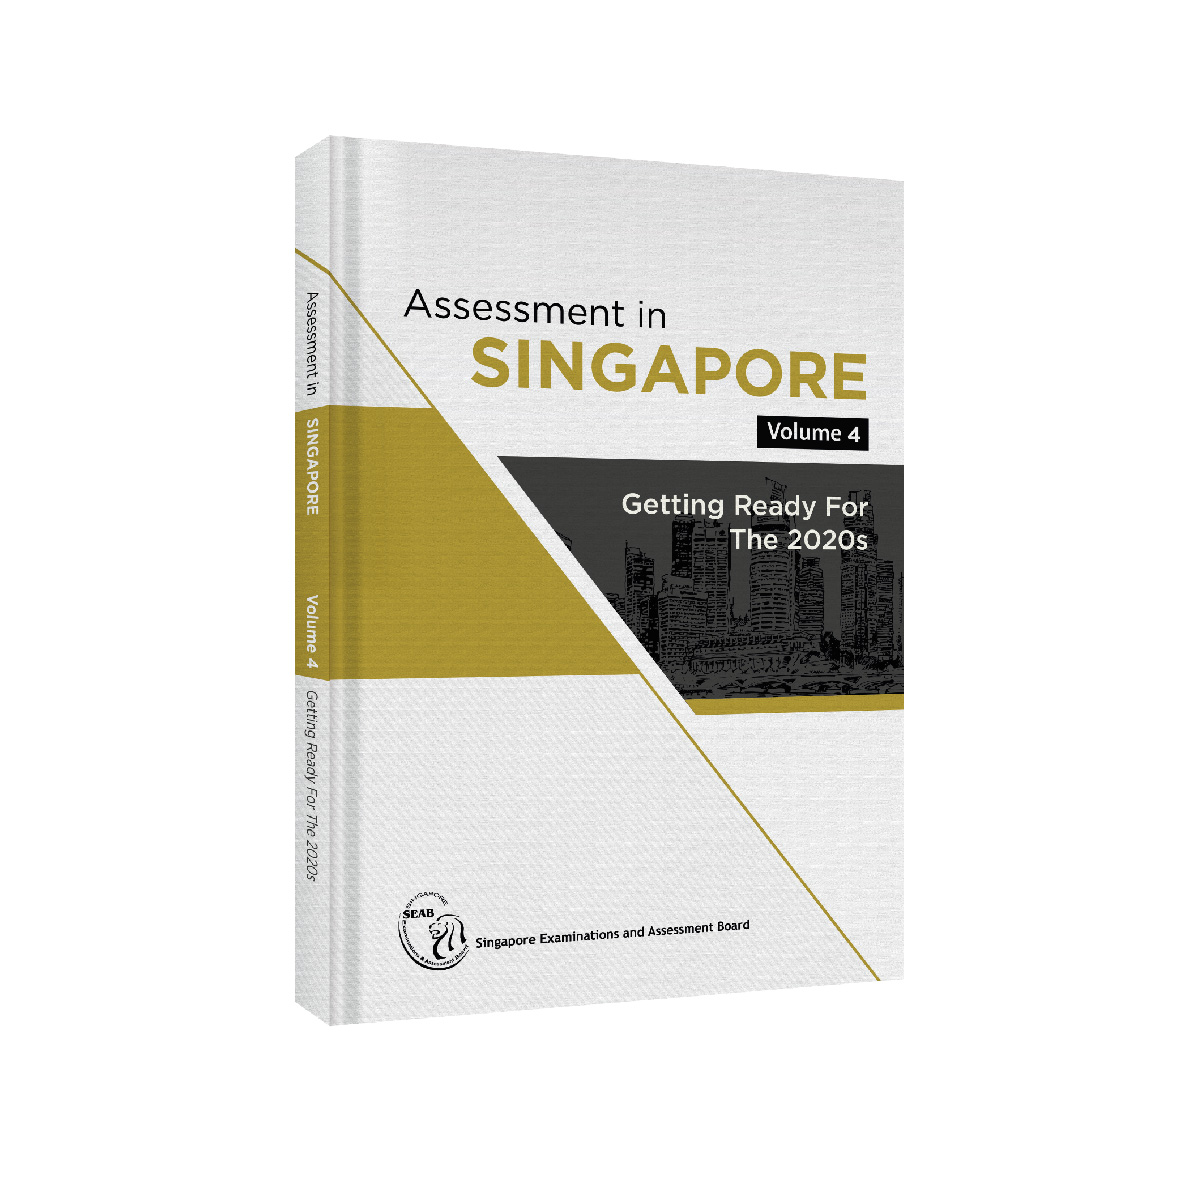 Assessment in Singapore Vol.4